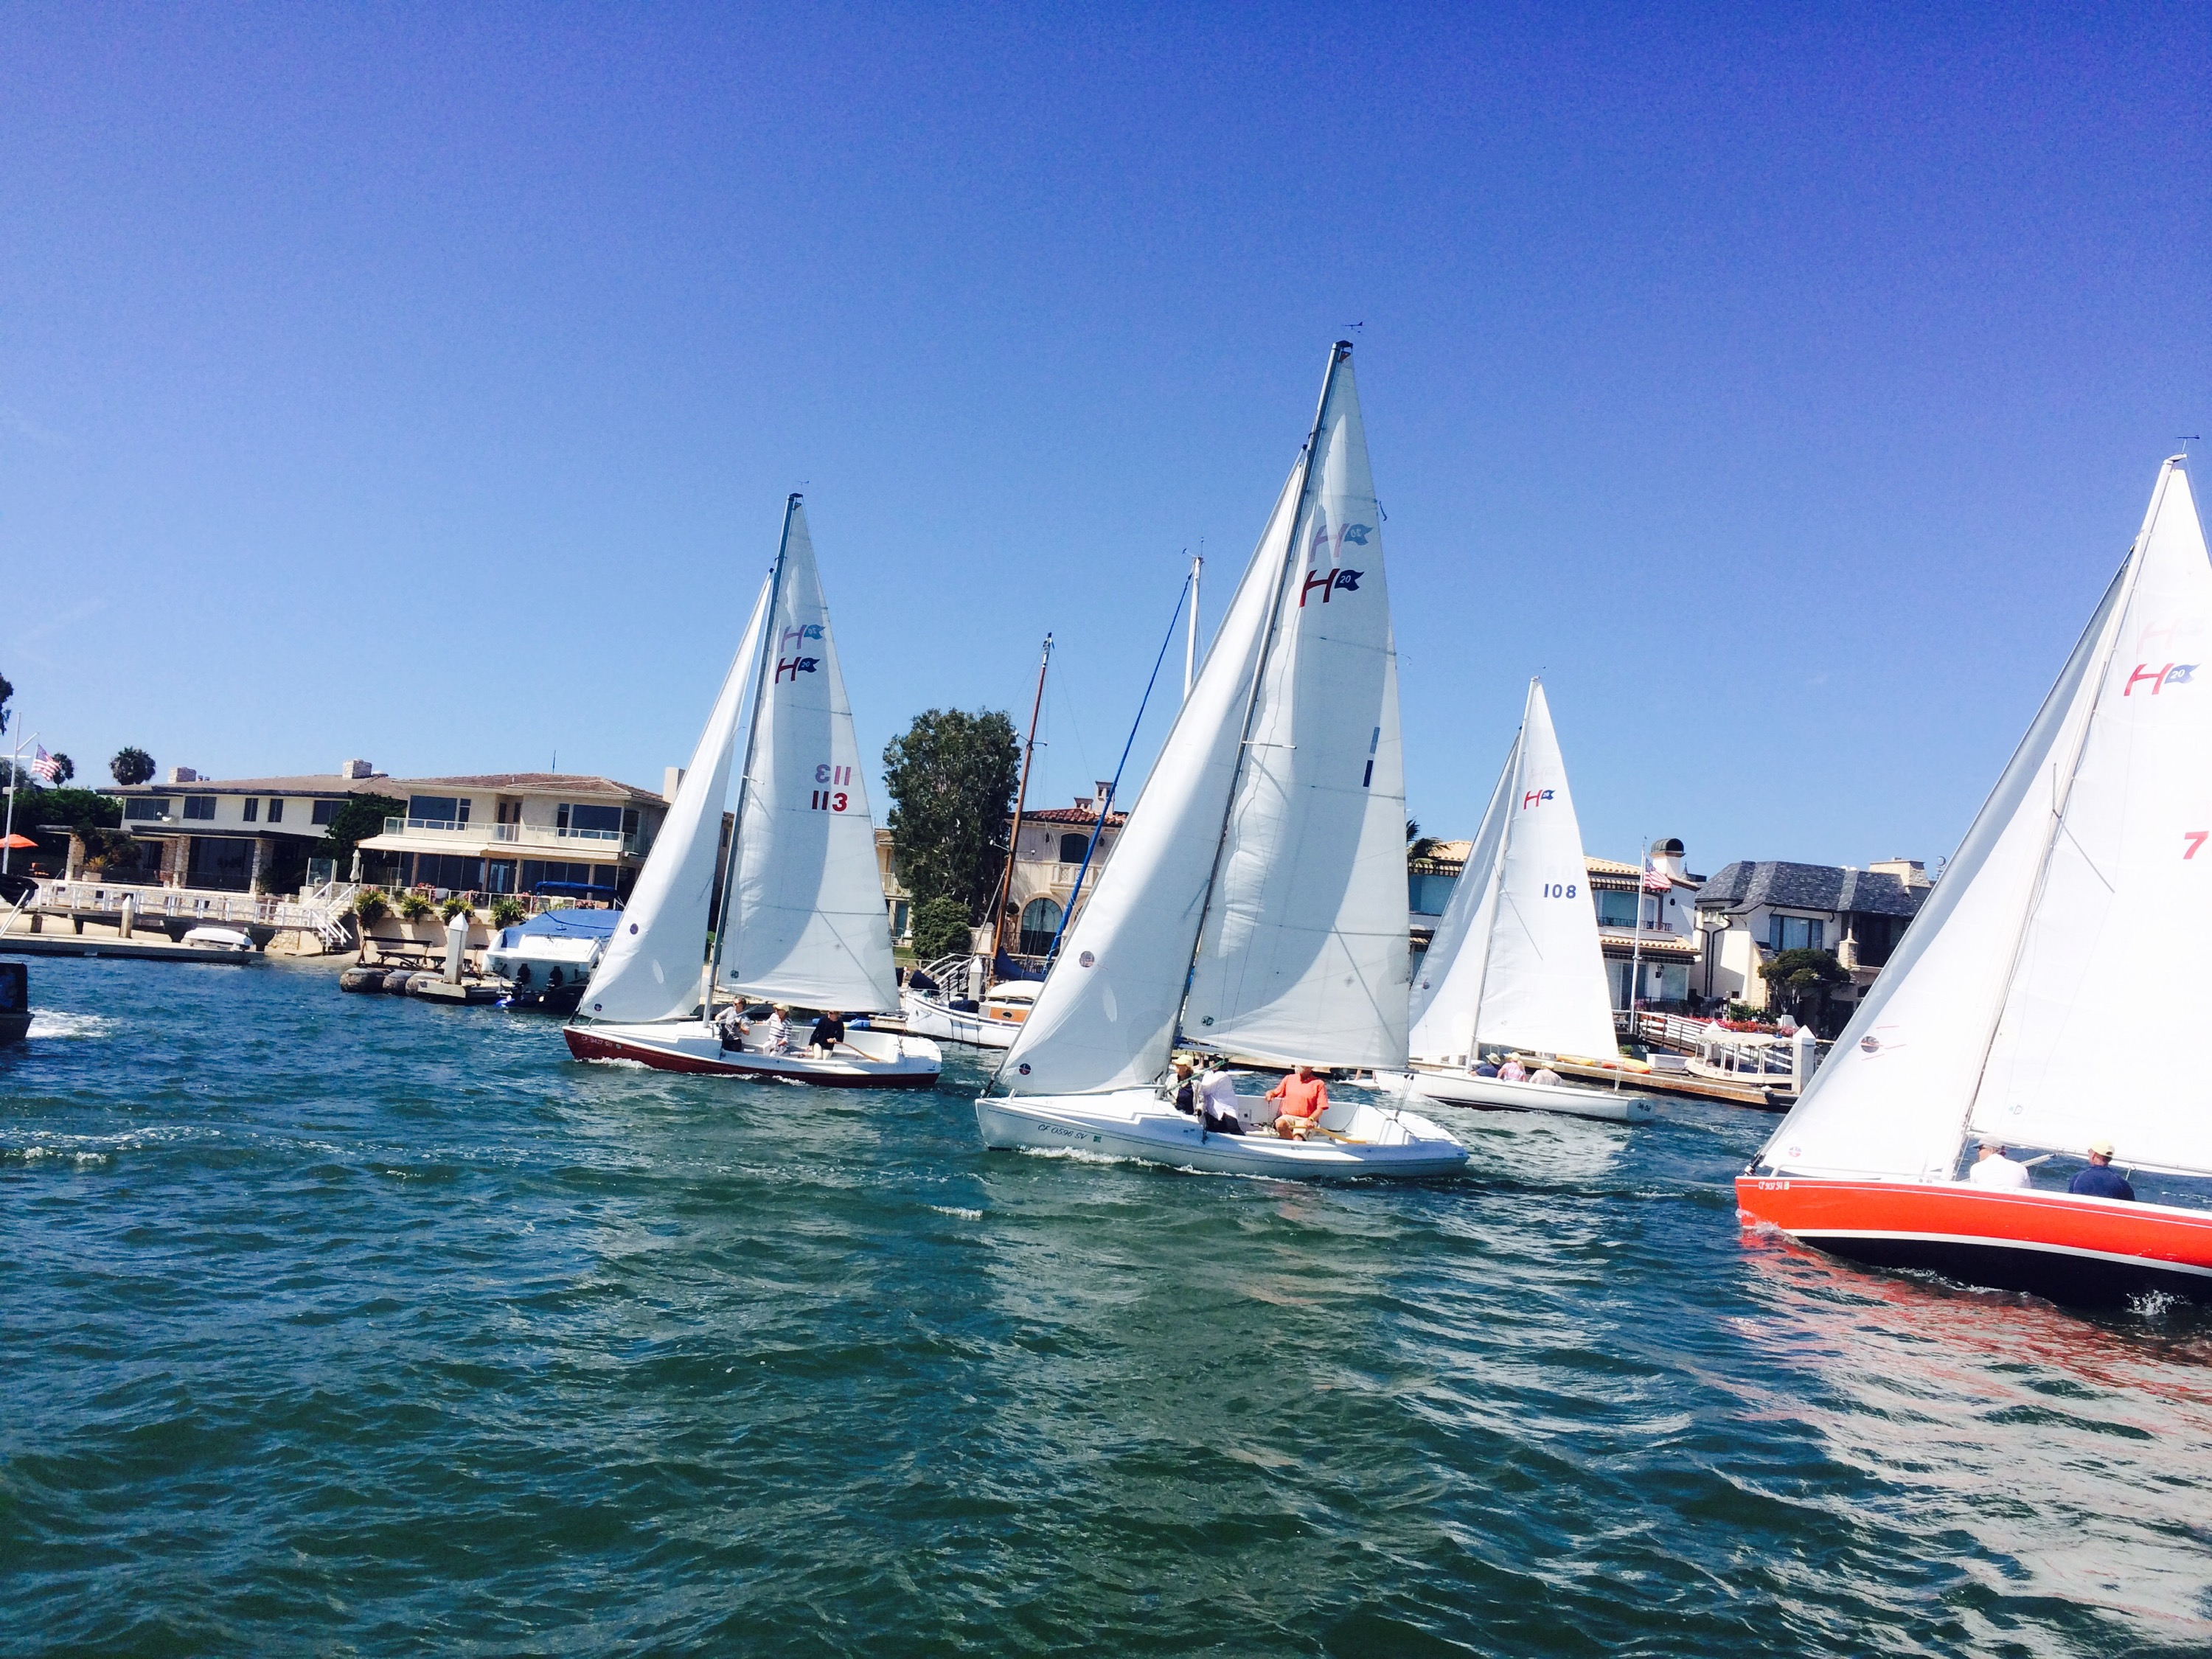 memorial day destinations in california, what to do for memorial day weekend in california, malibu wines,